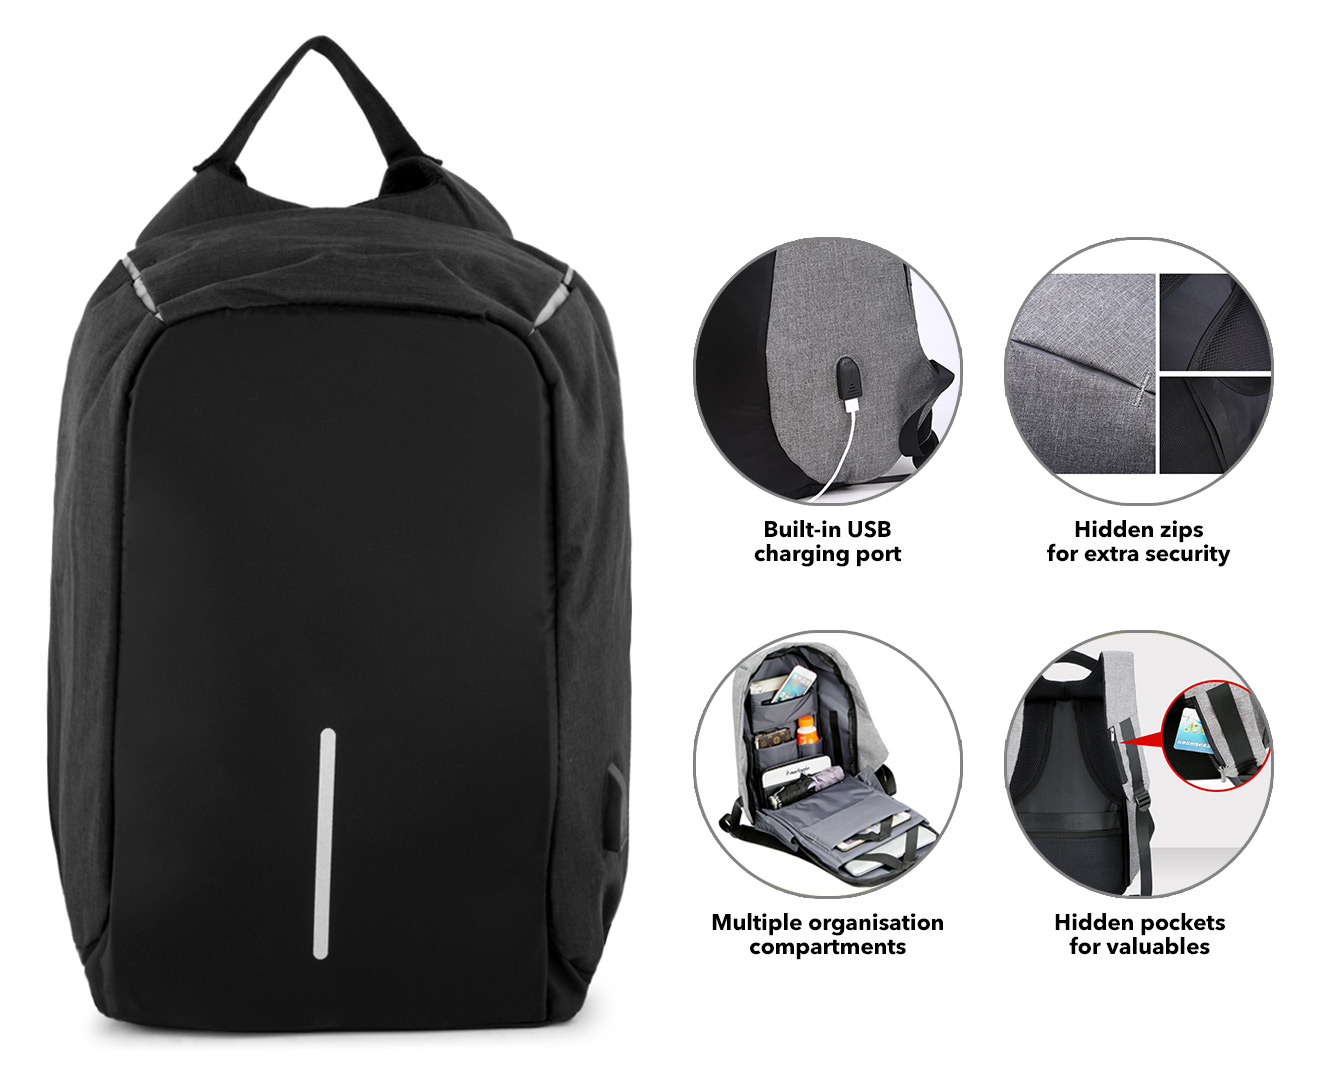 686aa12a2289 Details about Anti-Theft Backpack with USB Charging Port - Black